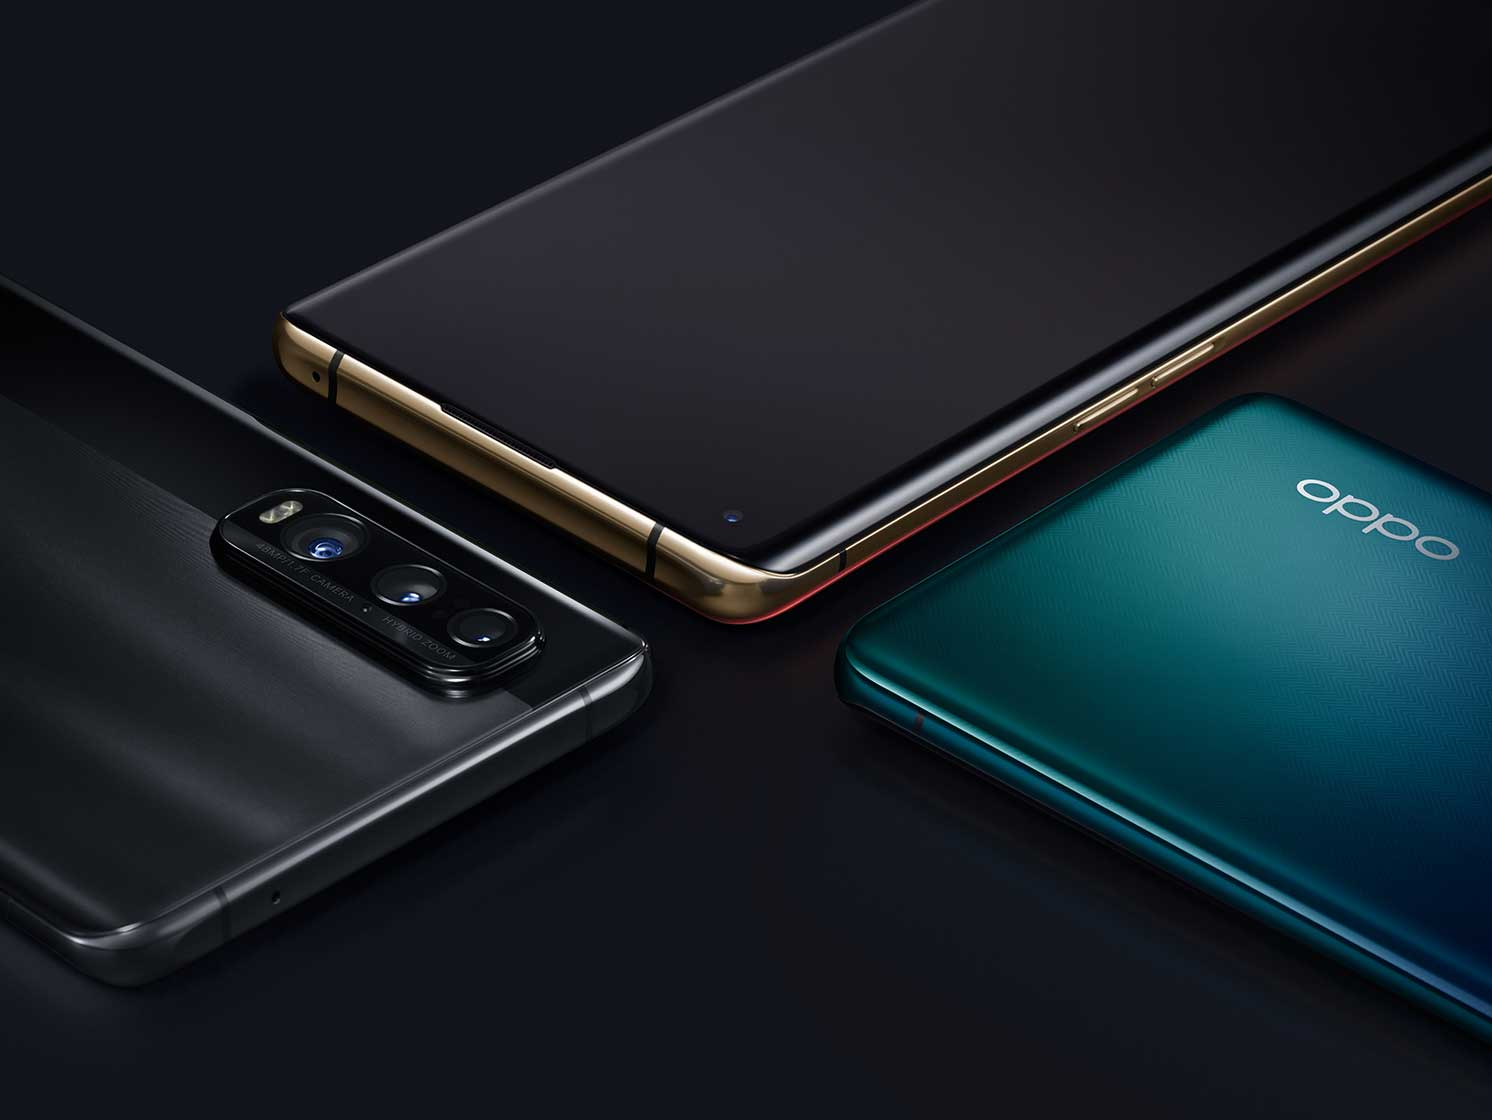 OPPO Find X2 Series: Top Grade Materials and Touchscreen Experience